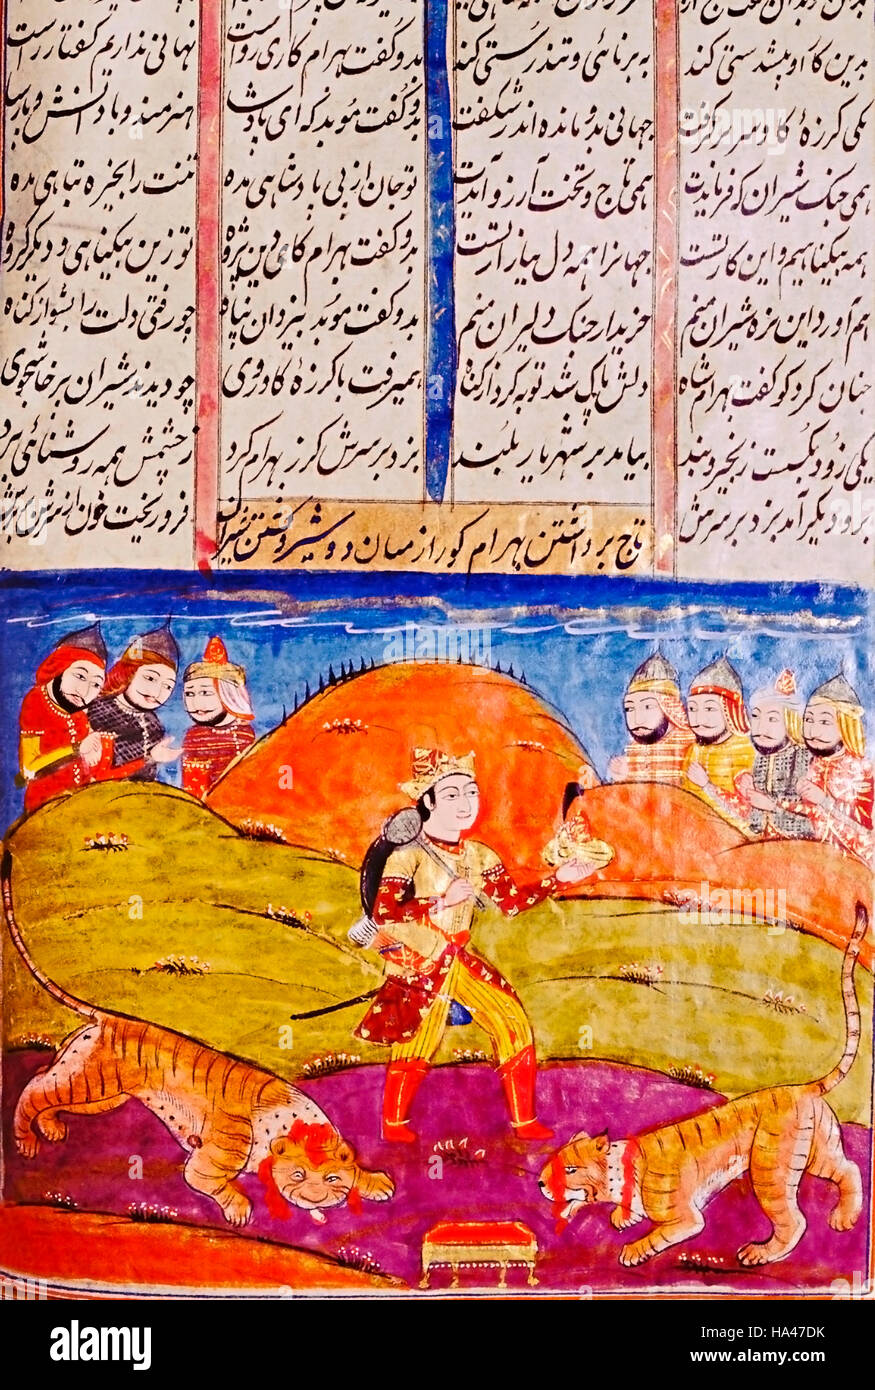 Shahnama or The Book of Kings : A tiger fight. Epic poem by Firdausi, 934-1020 CE - Stock Image